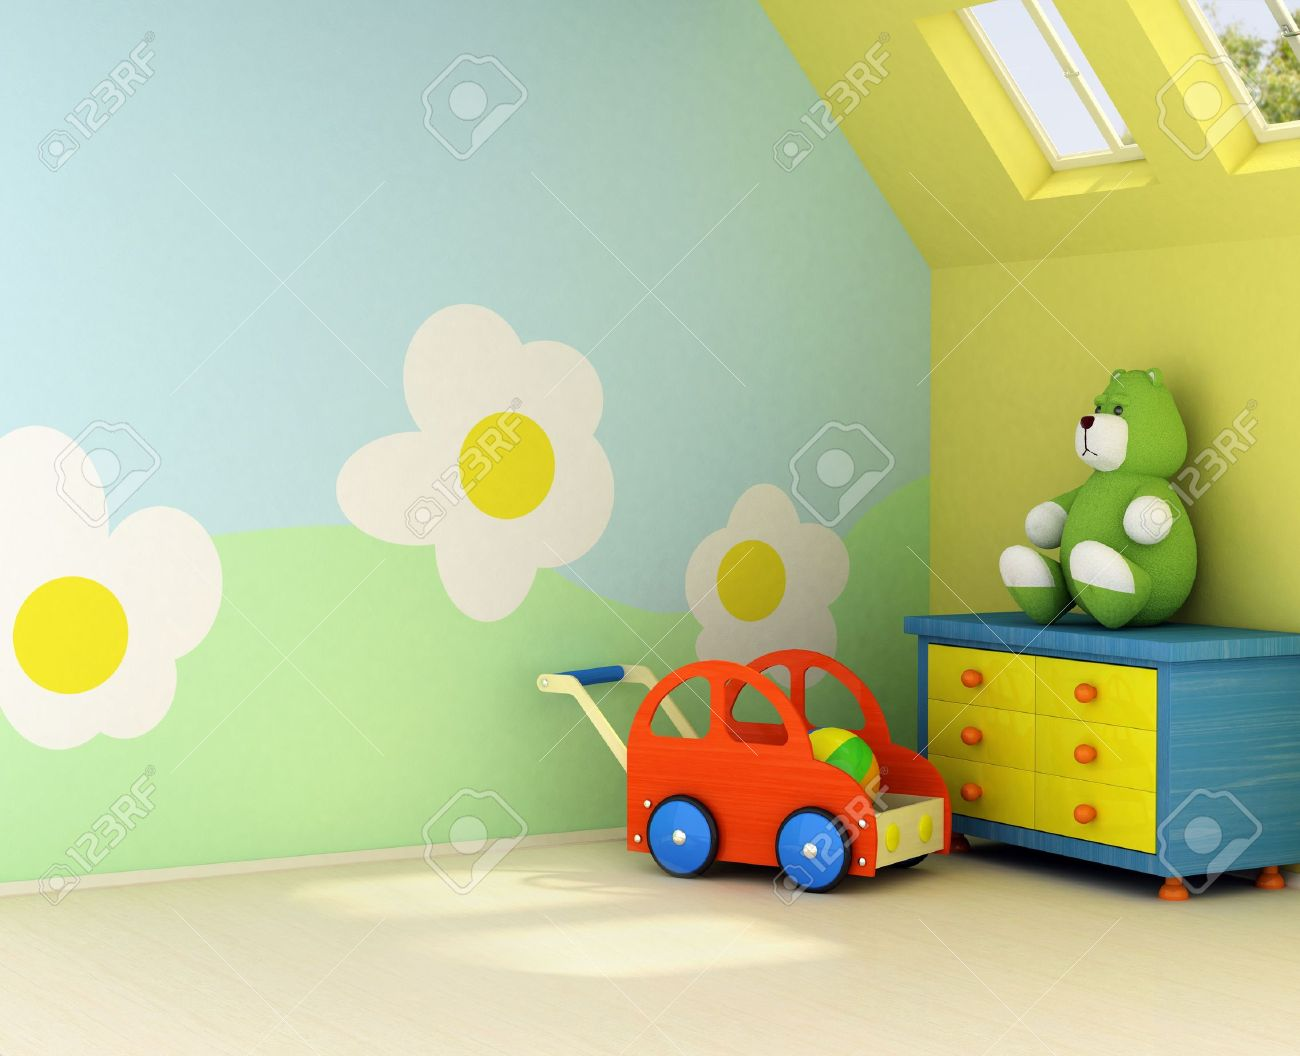 Design on the wall is my own image.Freshly painted room for a  with the flower design on the wall Stock Photo - 1142890